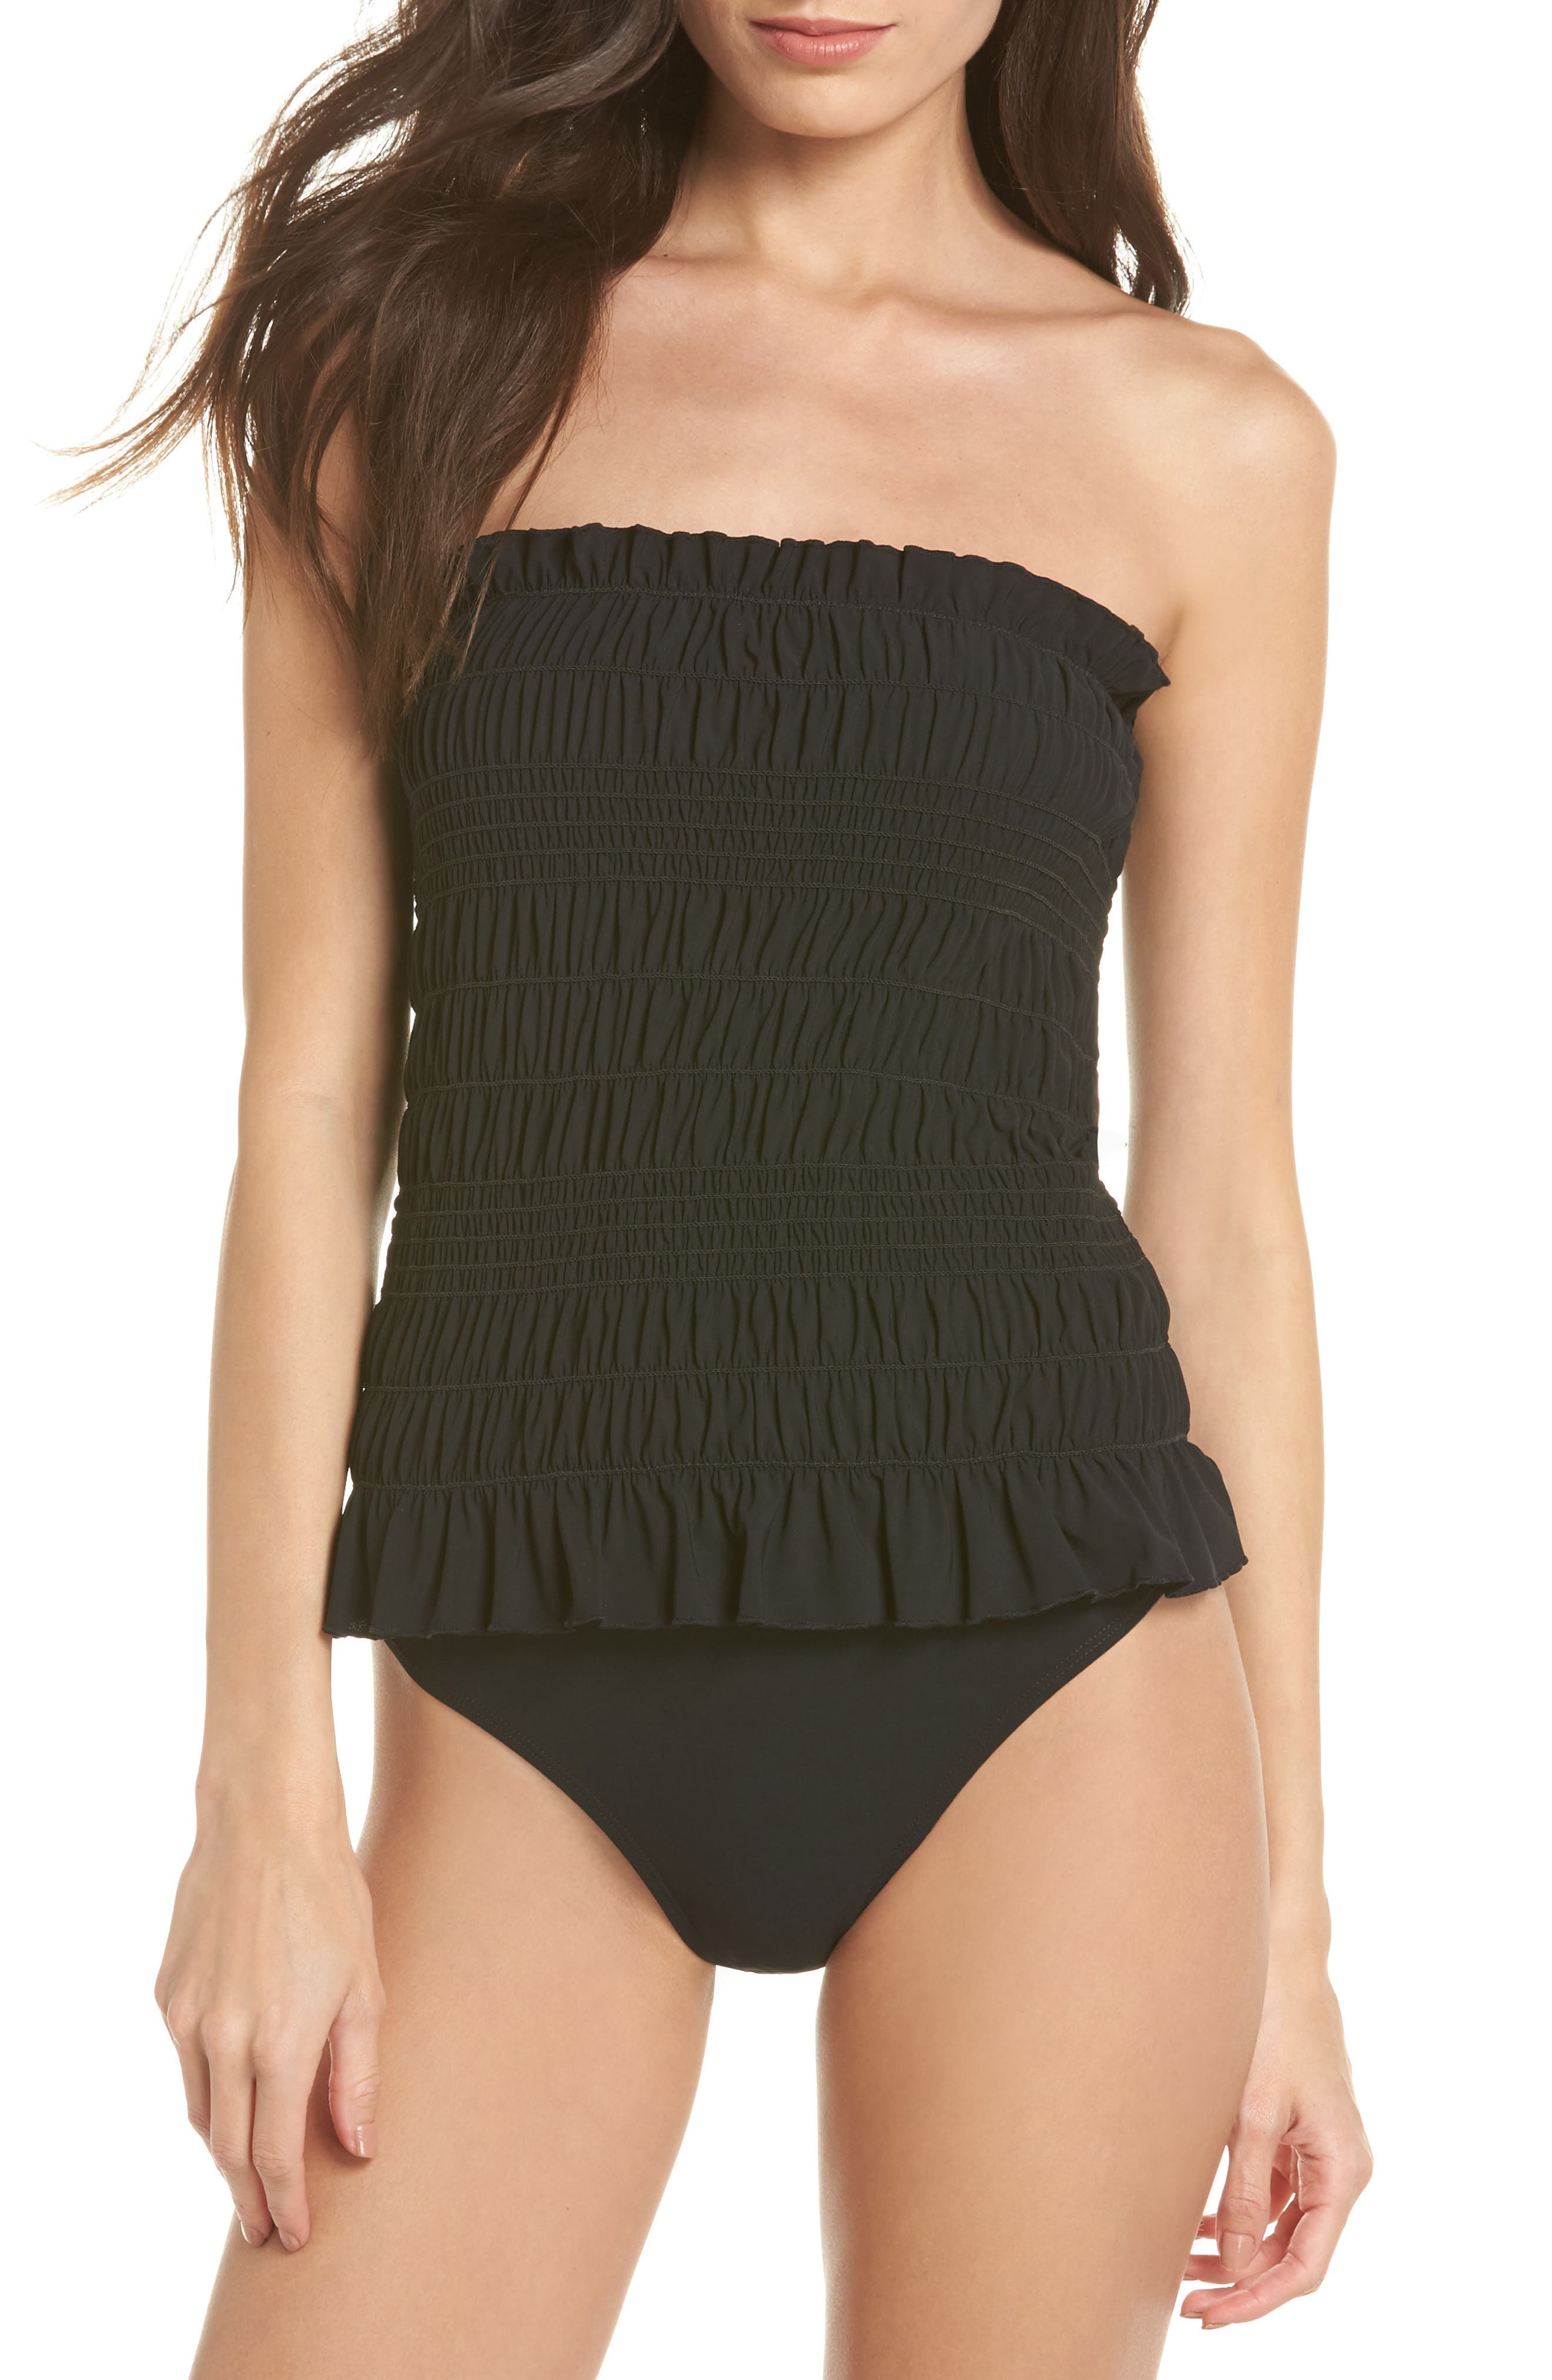 Costa Smocked One-Piece Swimsuit,                         Main,                         color, 009